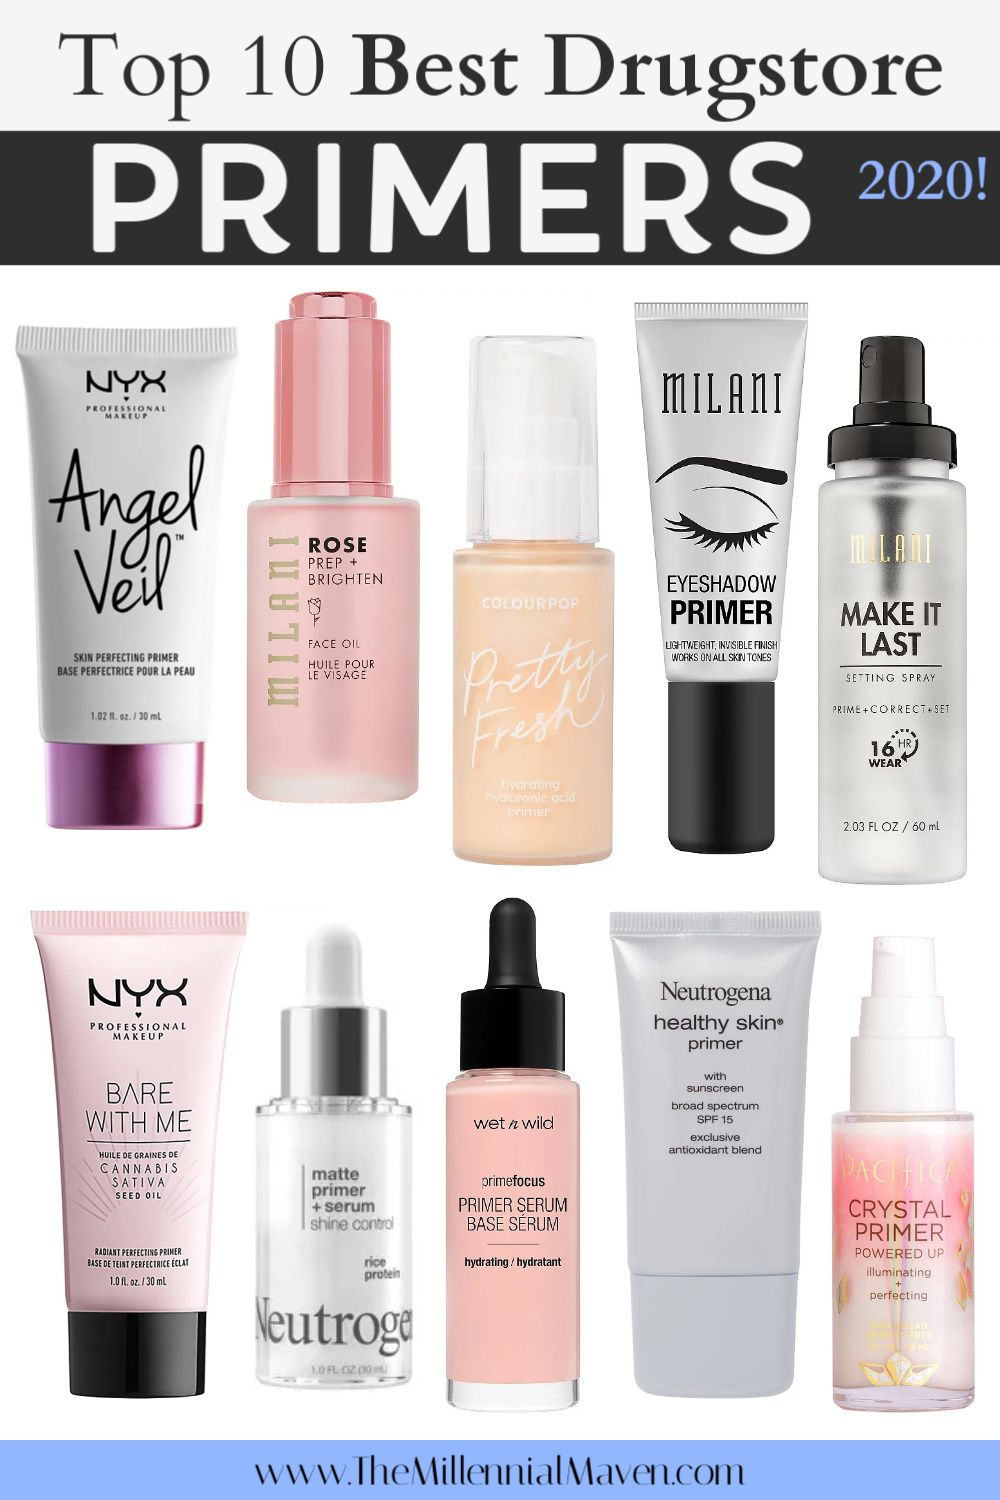 Updated 2020 Top 10 Best Face Eye Primers At The Drugstore Best Drugstore Primers The Millennial Maven In 2020 Best Drugstore Primer Drugstore Primer Best Face Products